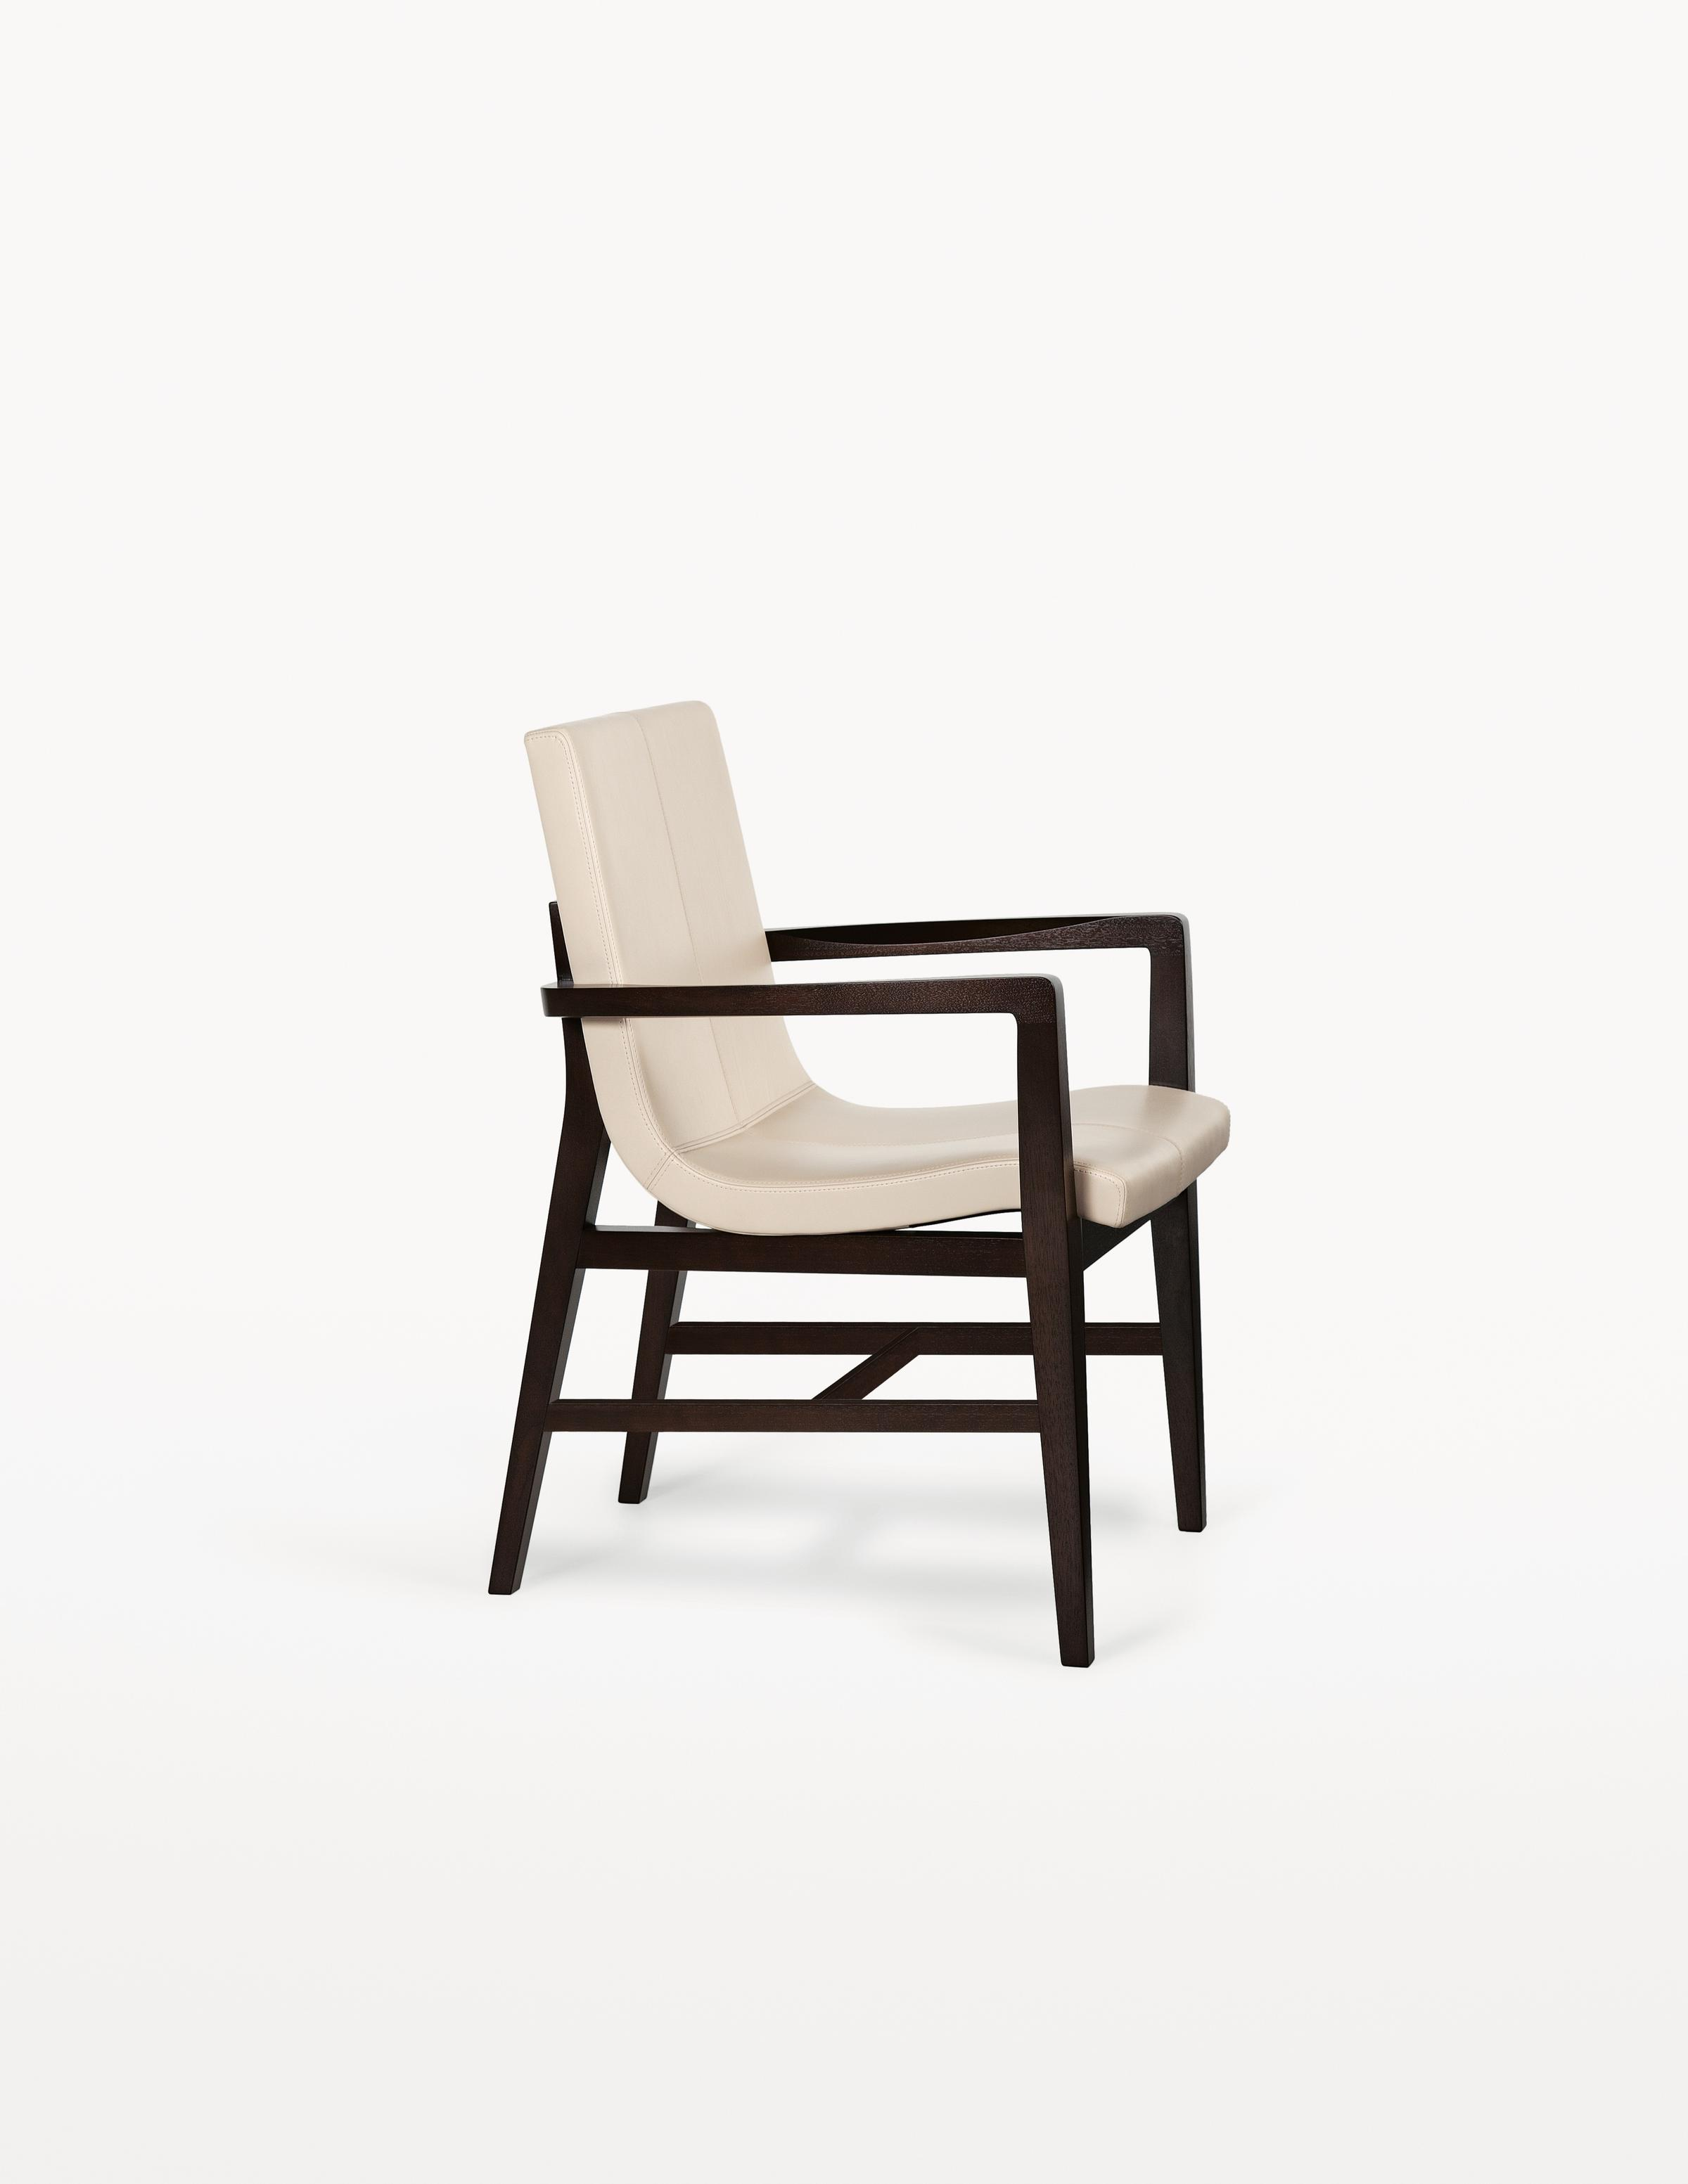 Siren Dining Arm Chair with stretcher